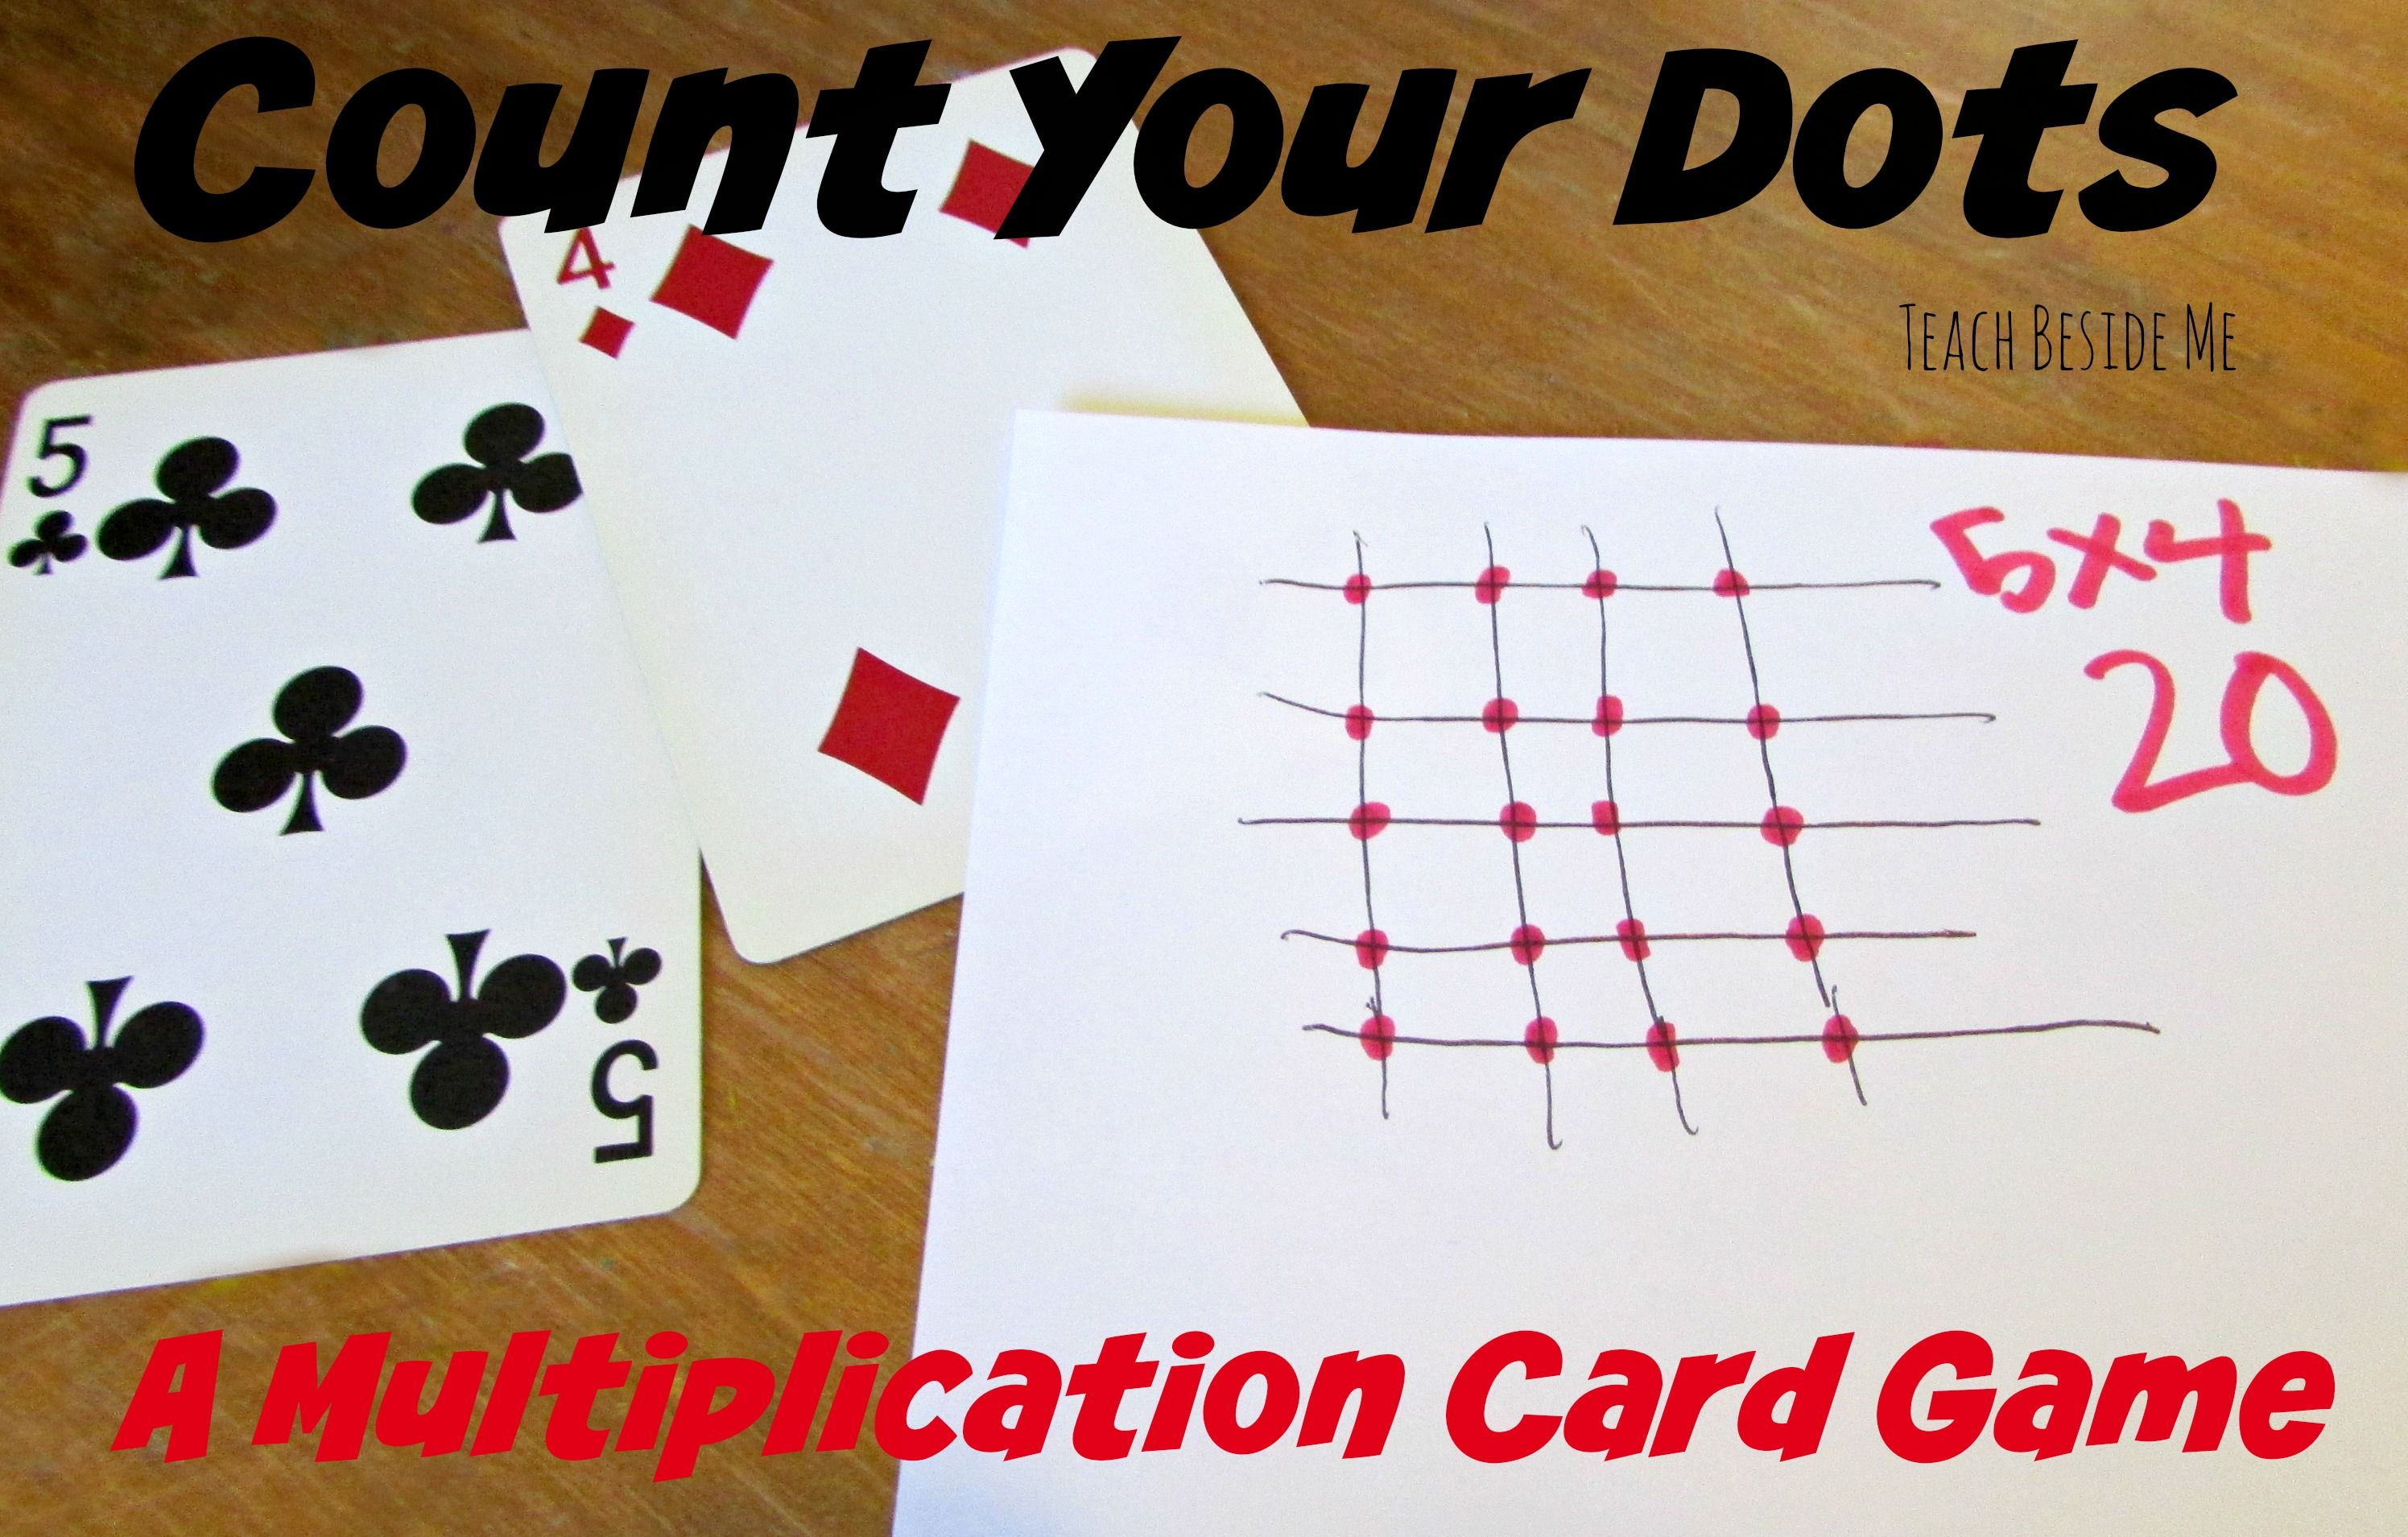 Play this multiplication card game, Count Your Dots, to practice math facts with your kids in a fun way.